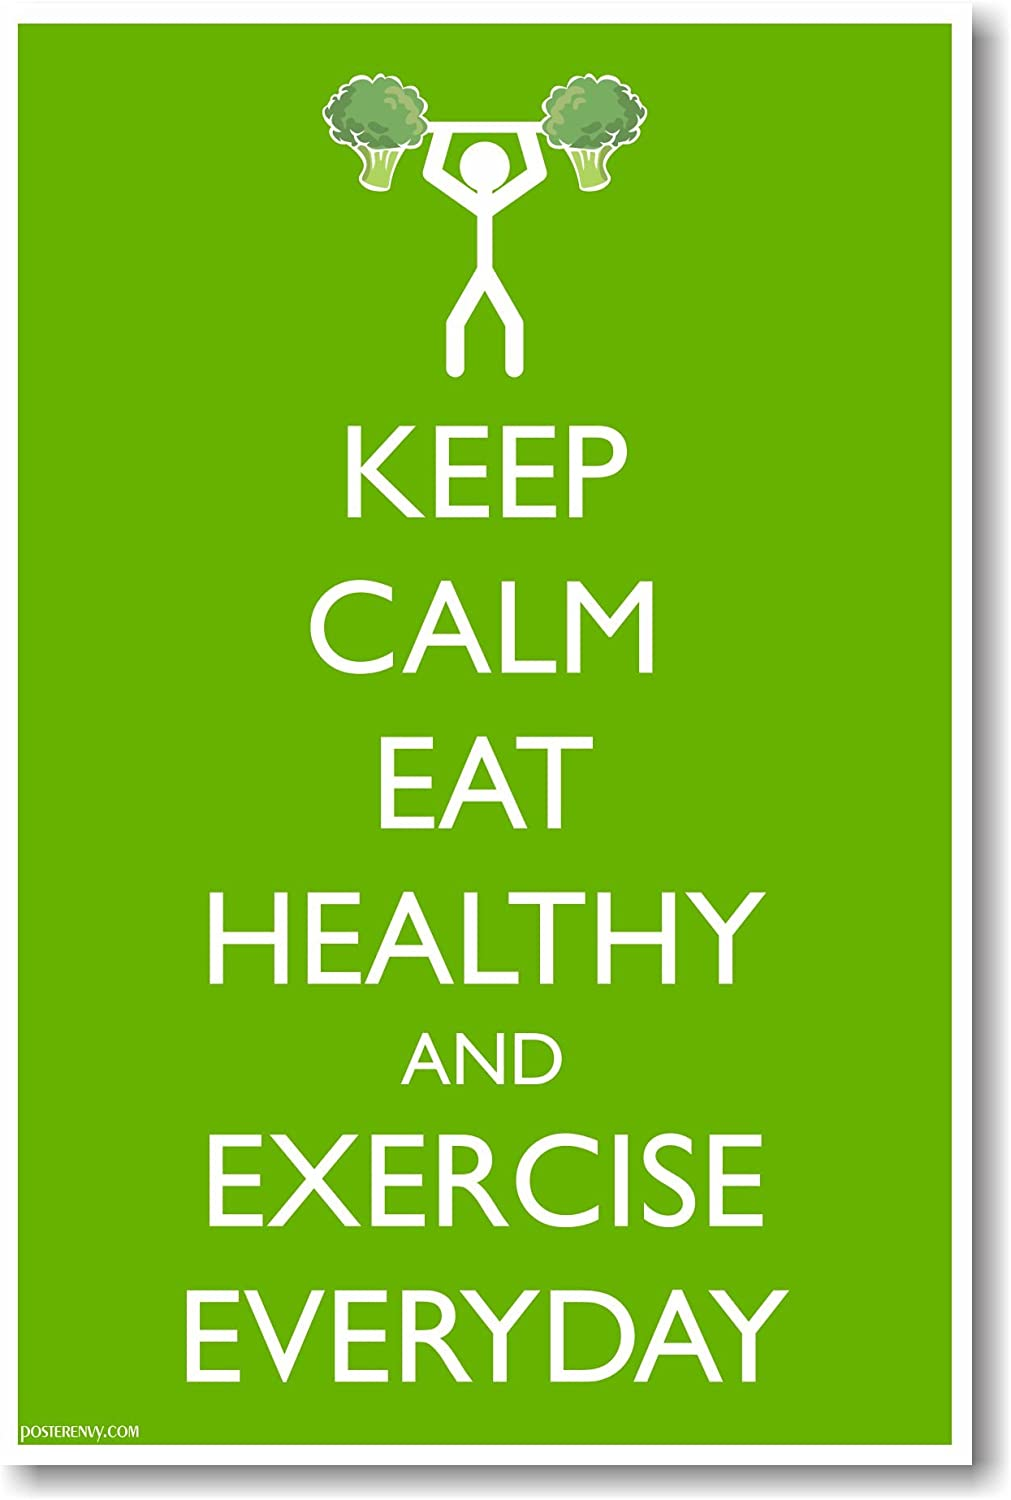 Keep Calm Eat Heathy and Exercise Everyday - NEW Health and Fitness Poster